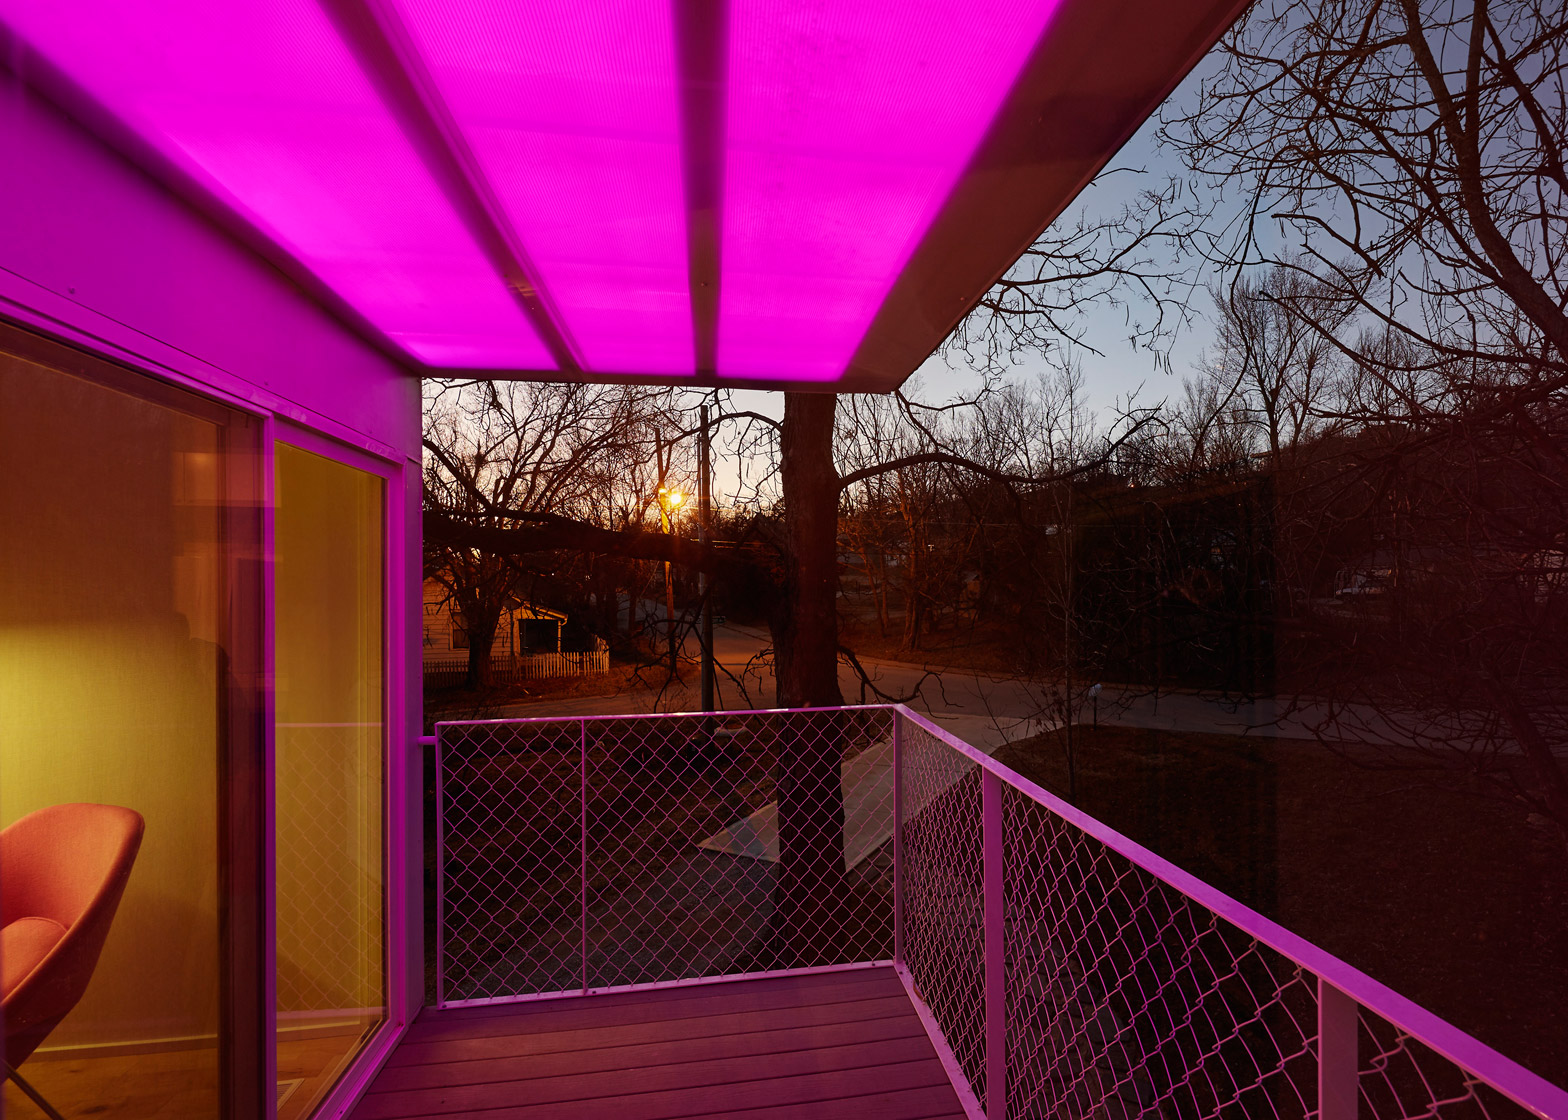 Mood ring house by Silo AR+D in Fayetteville, Arkansas